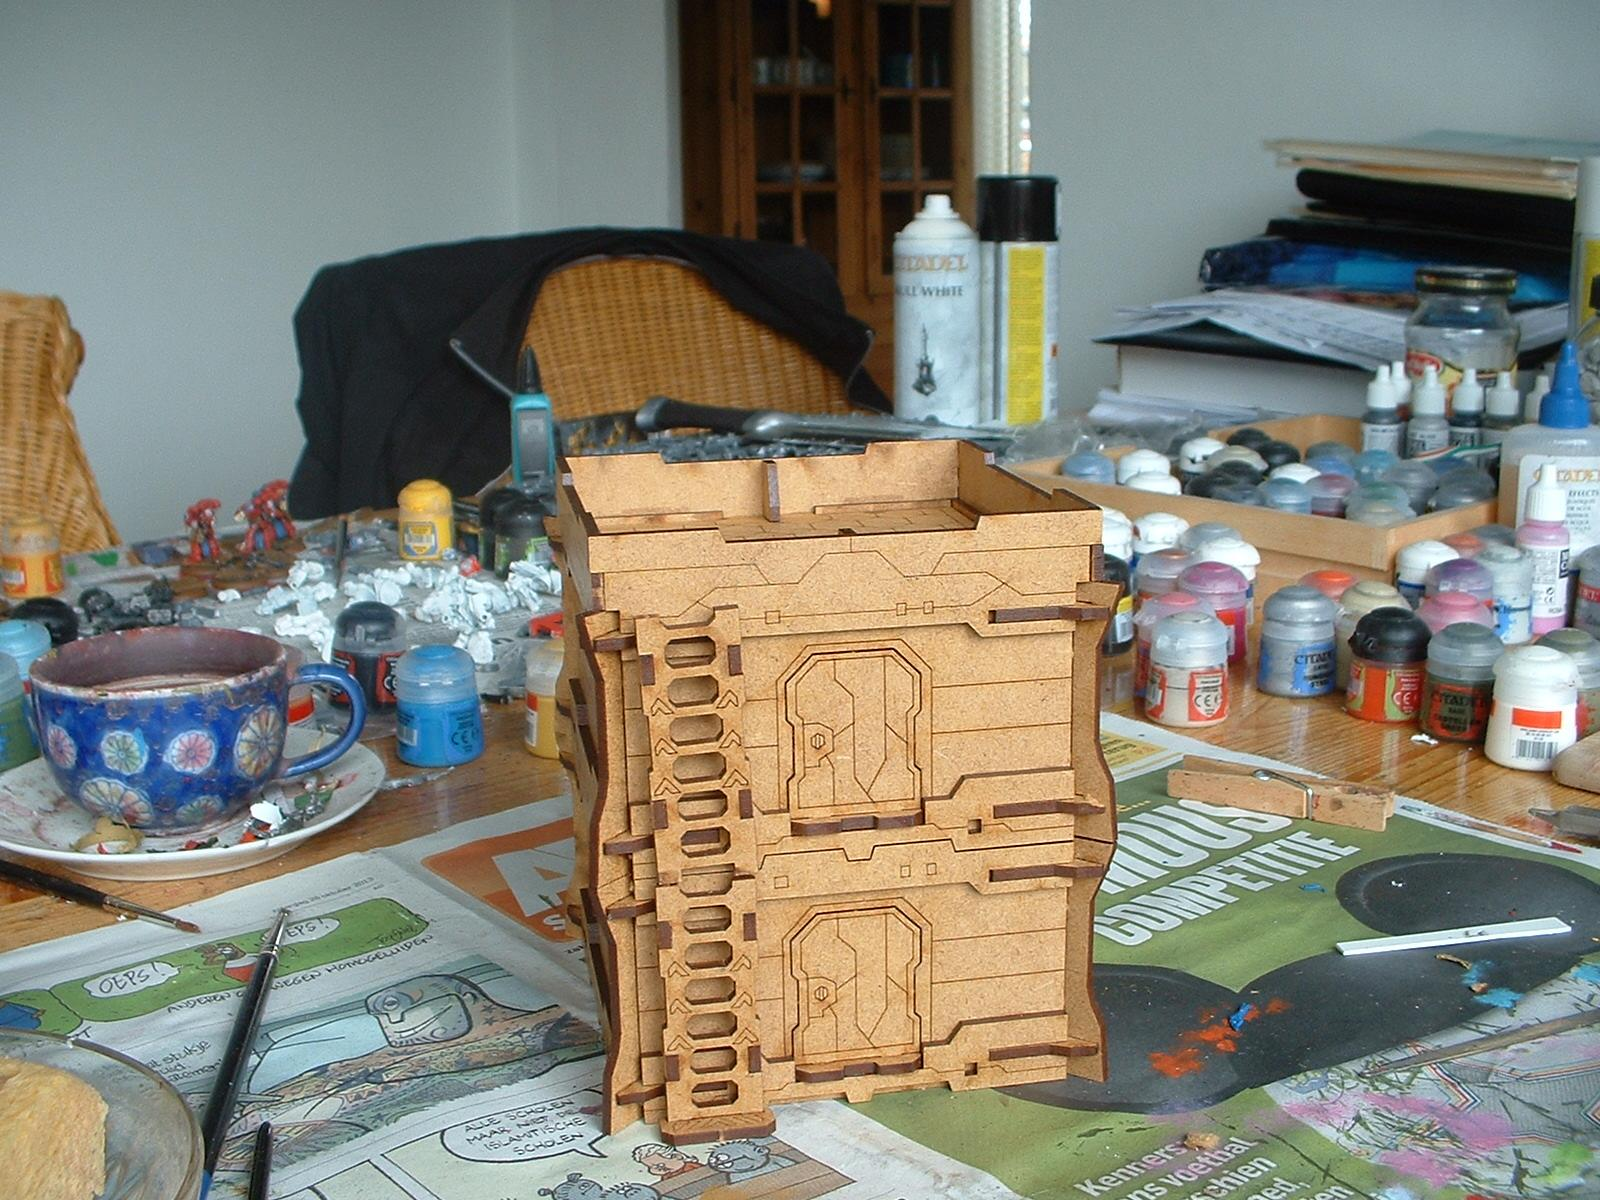 Bunker, Mdf, Micro Art Studios, Terrain, Work In Progress